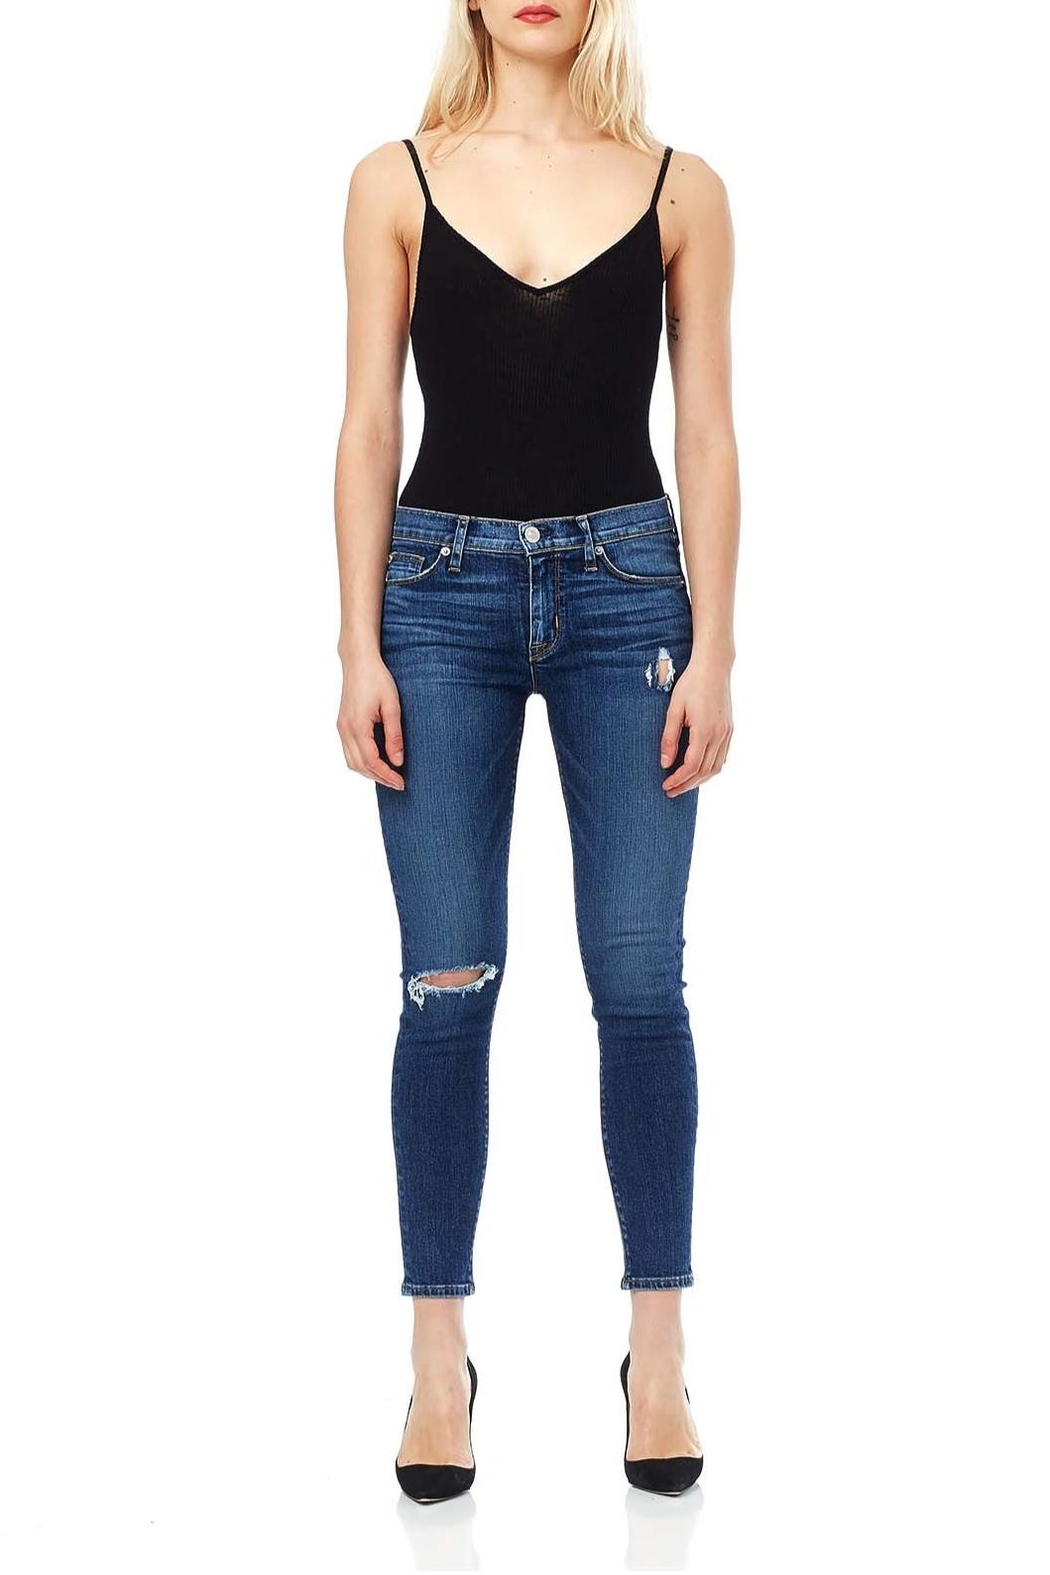 Hudson Jeans Ripped Knee Mid Jeans - Main Image